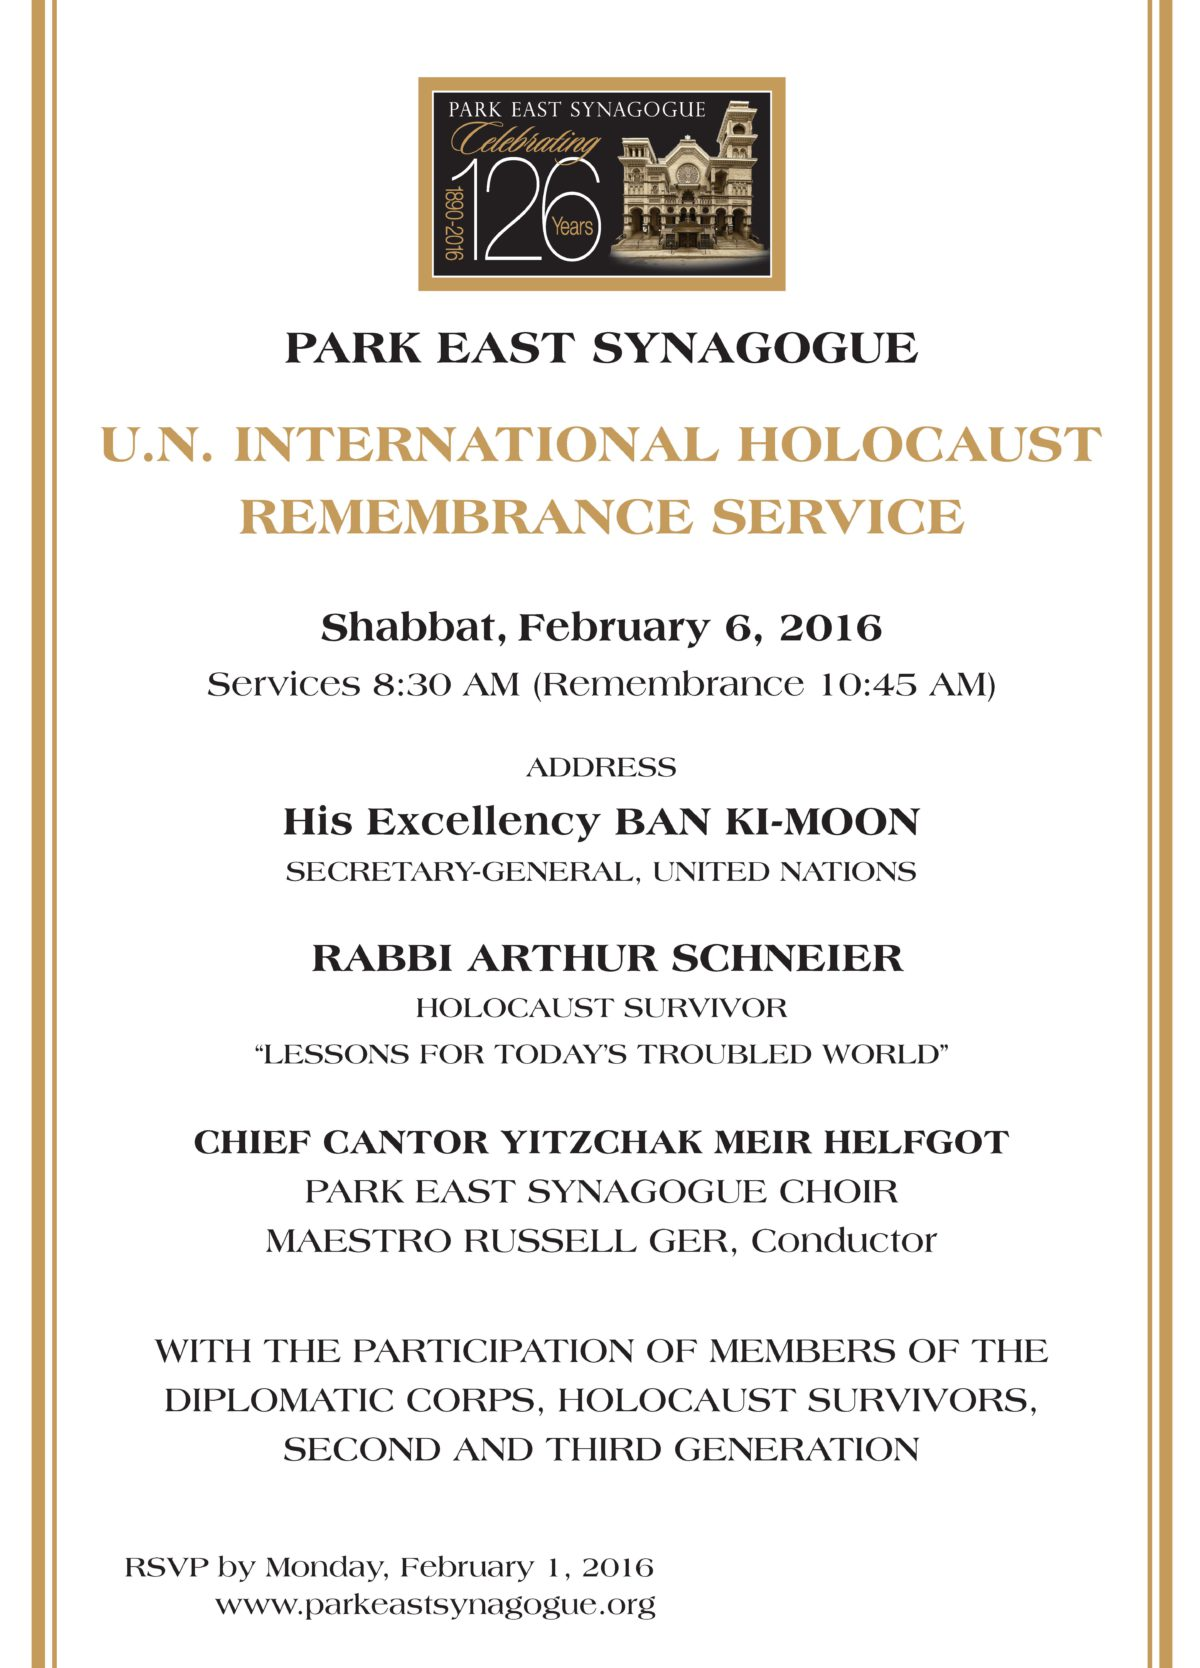 UN Holocaust Commemoration